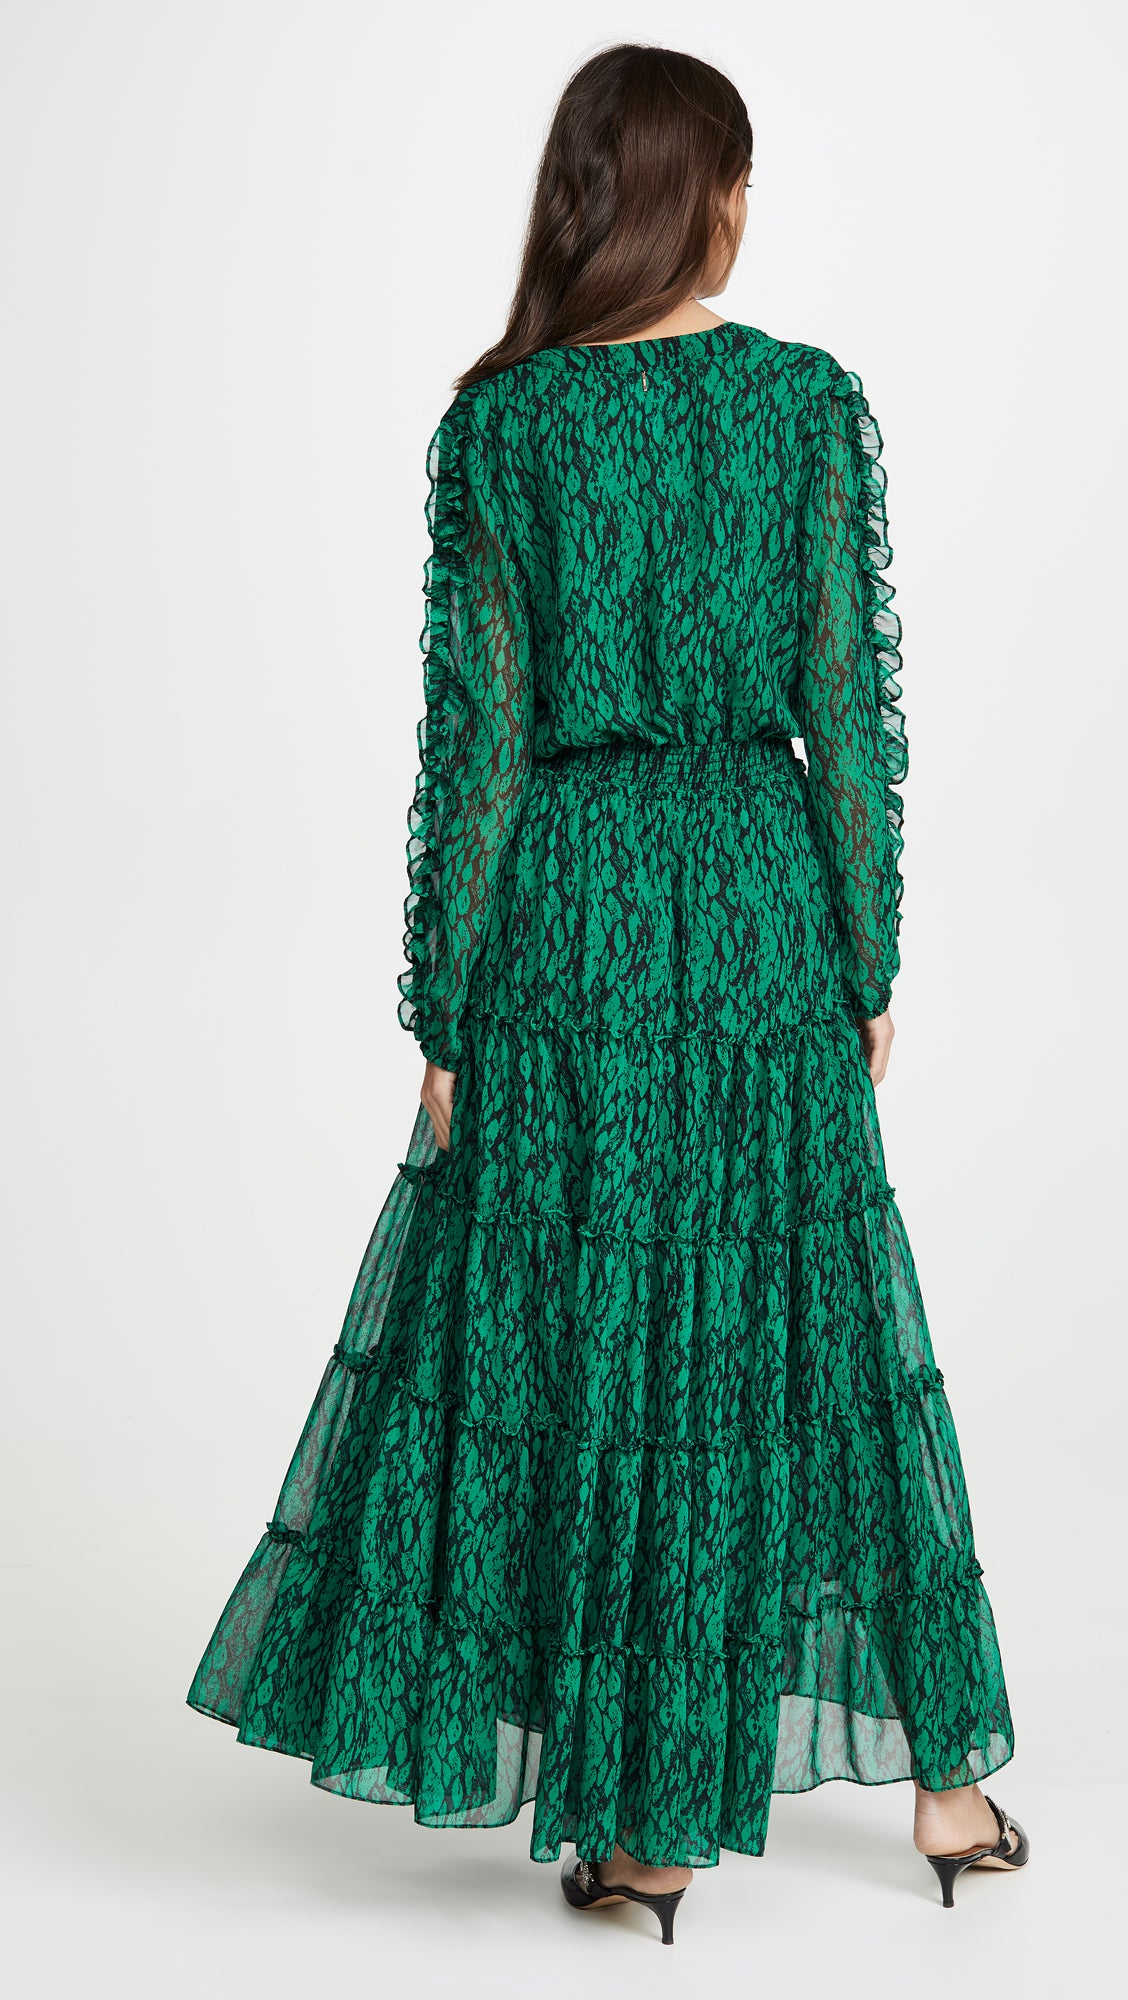 Hadeya Maxi Dress in Emerald Print